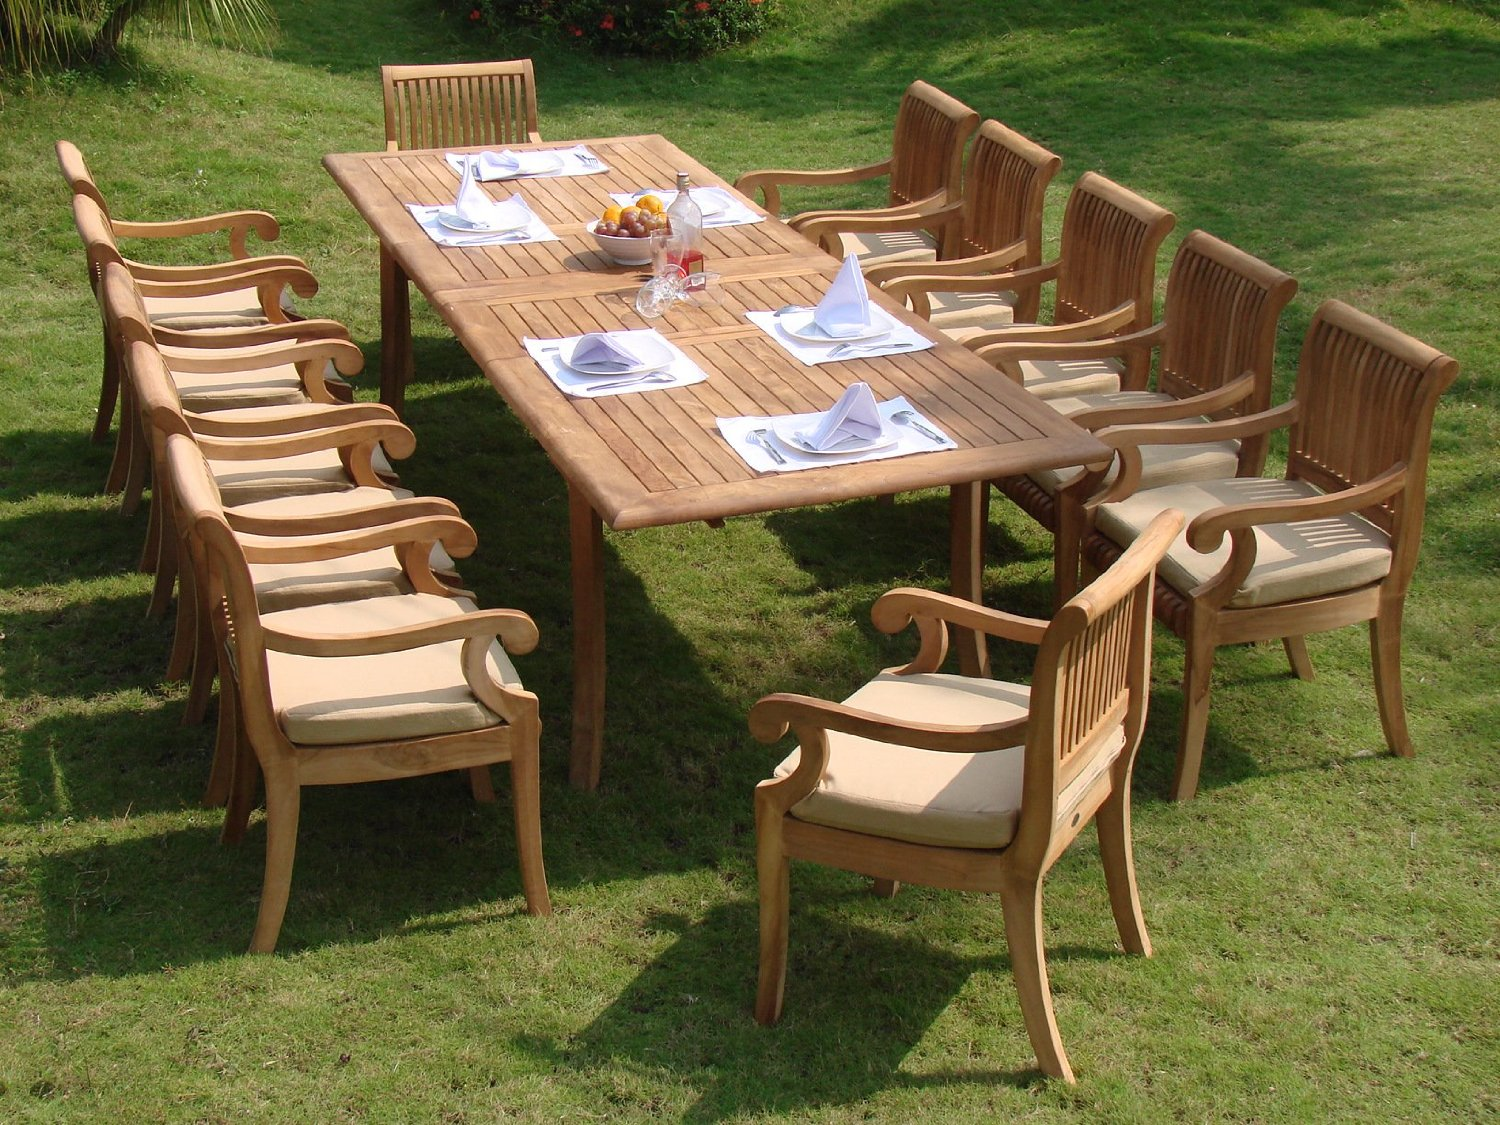 7 Piece Teak Outdoor Dining Set Antigua Teak 7 Piece Outdoor